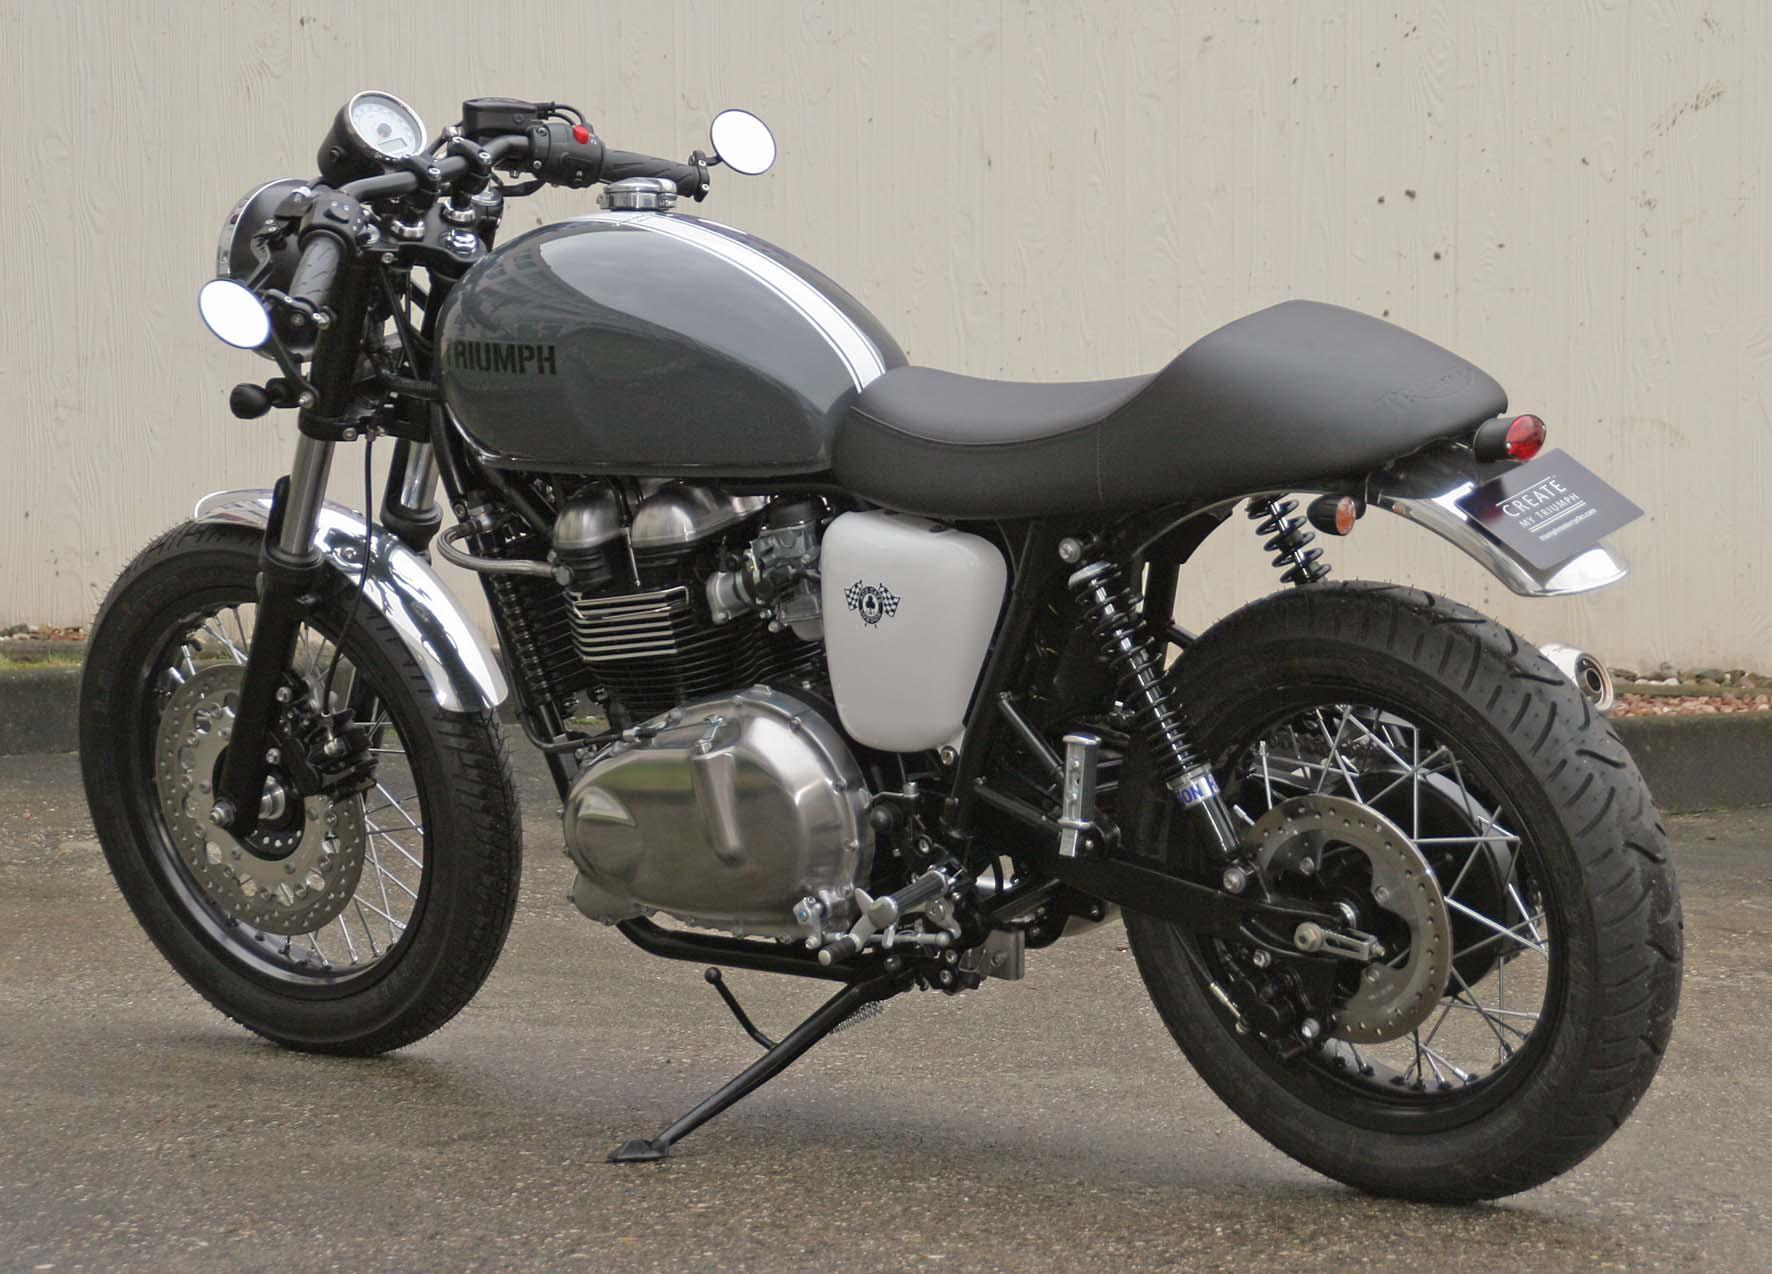 triumph thruxton ace motorrad fotos motorrad bilder. Black Bedroom Furniture Sets. Home Design Ideas